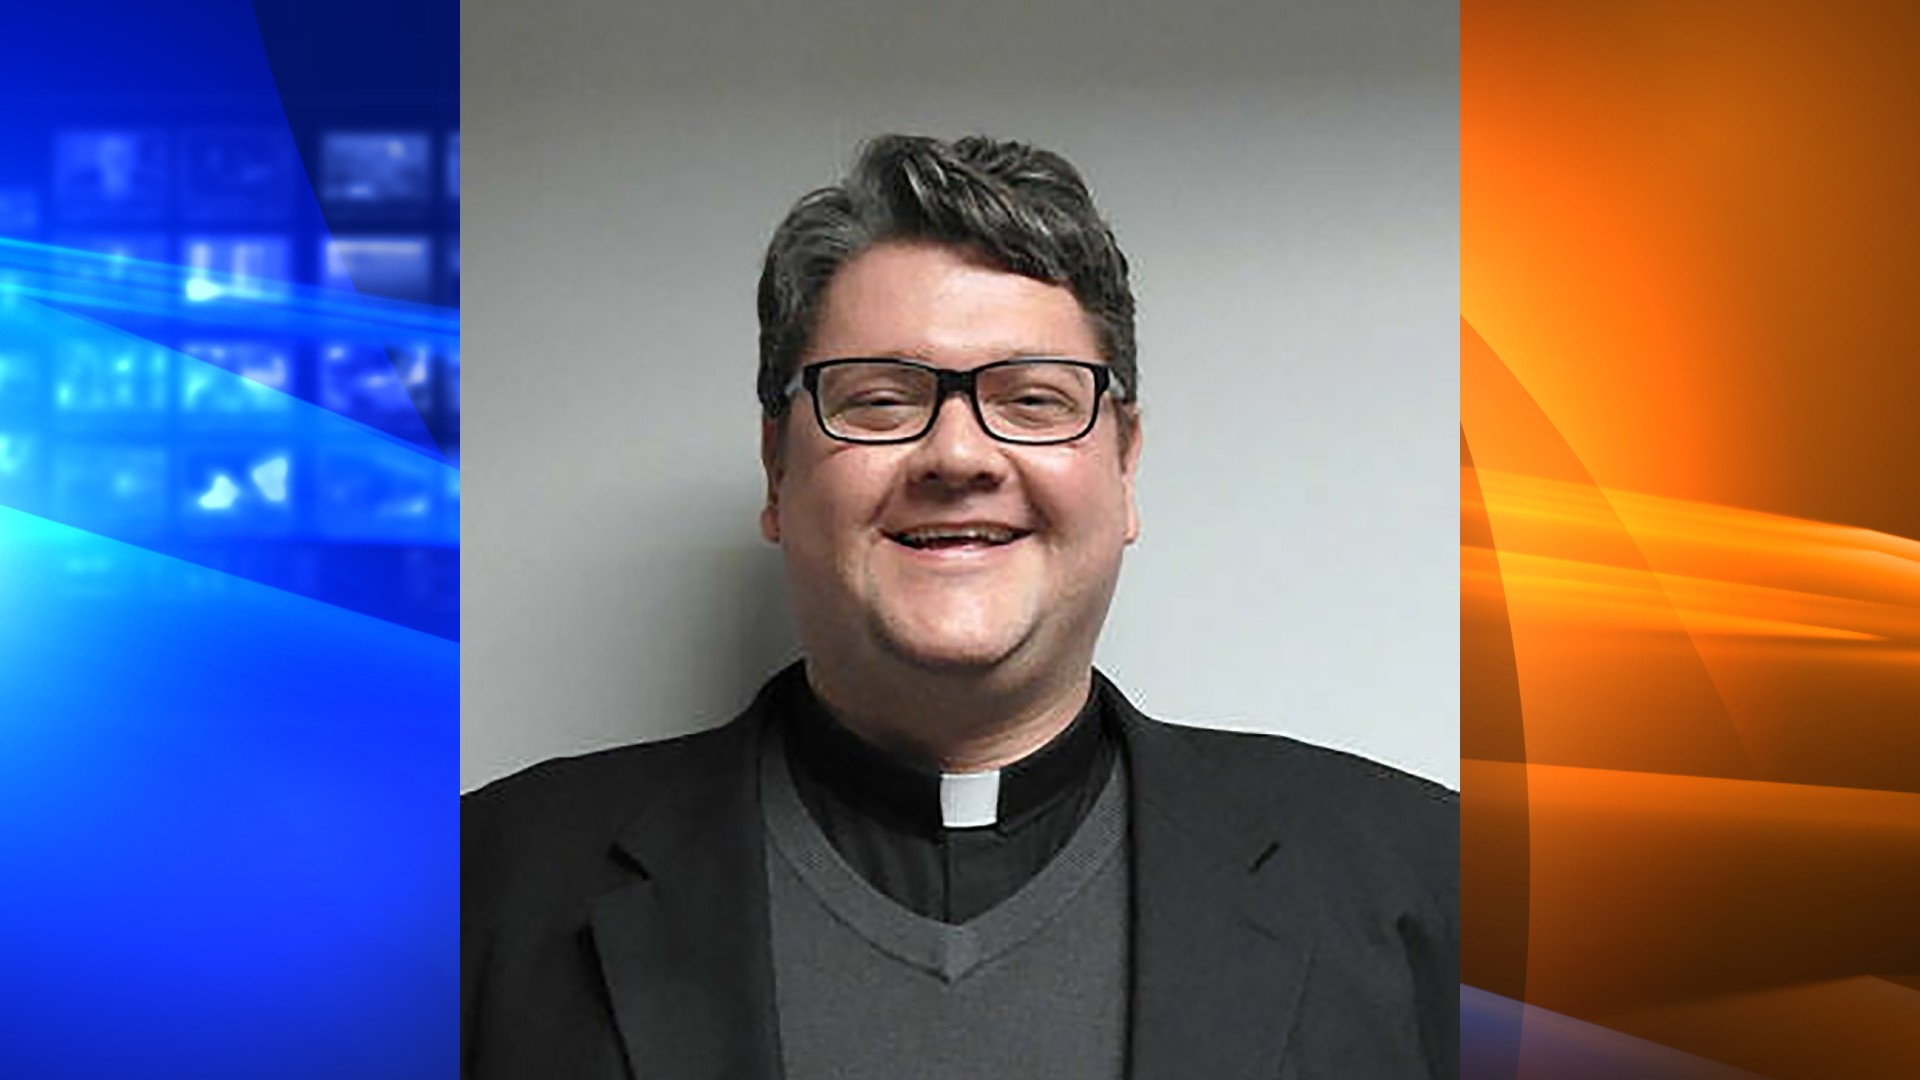 Ohio Catholic Priest Indicted on Charges of Juvenile Sex Trafficking, Sexual Exploitation of Children, and Child Porn